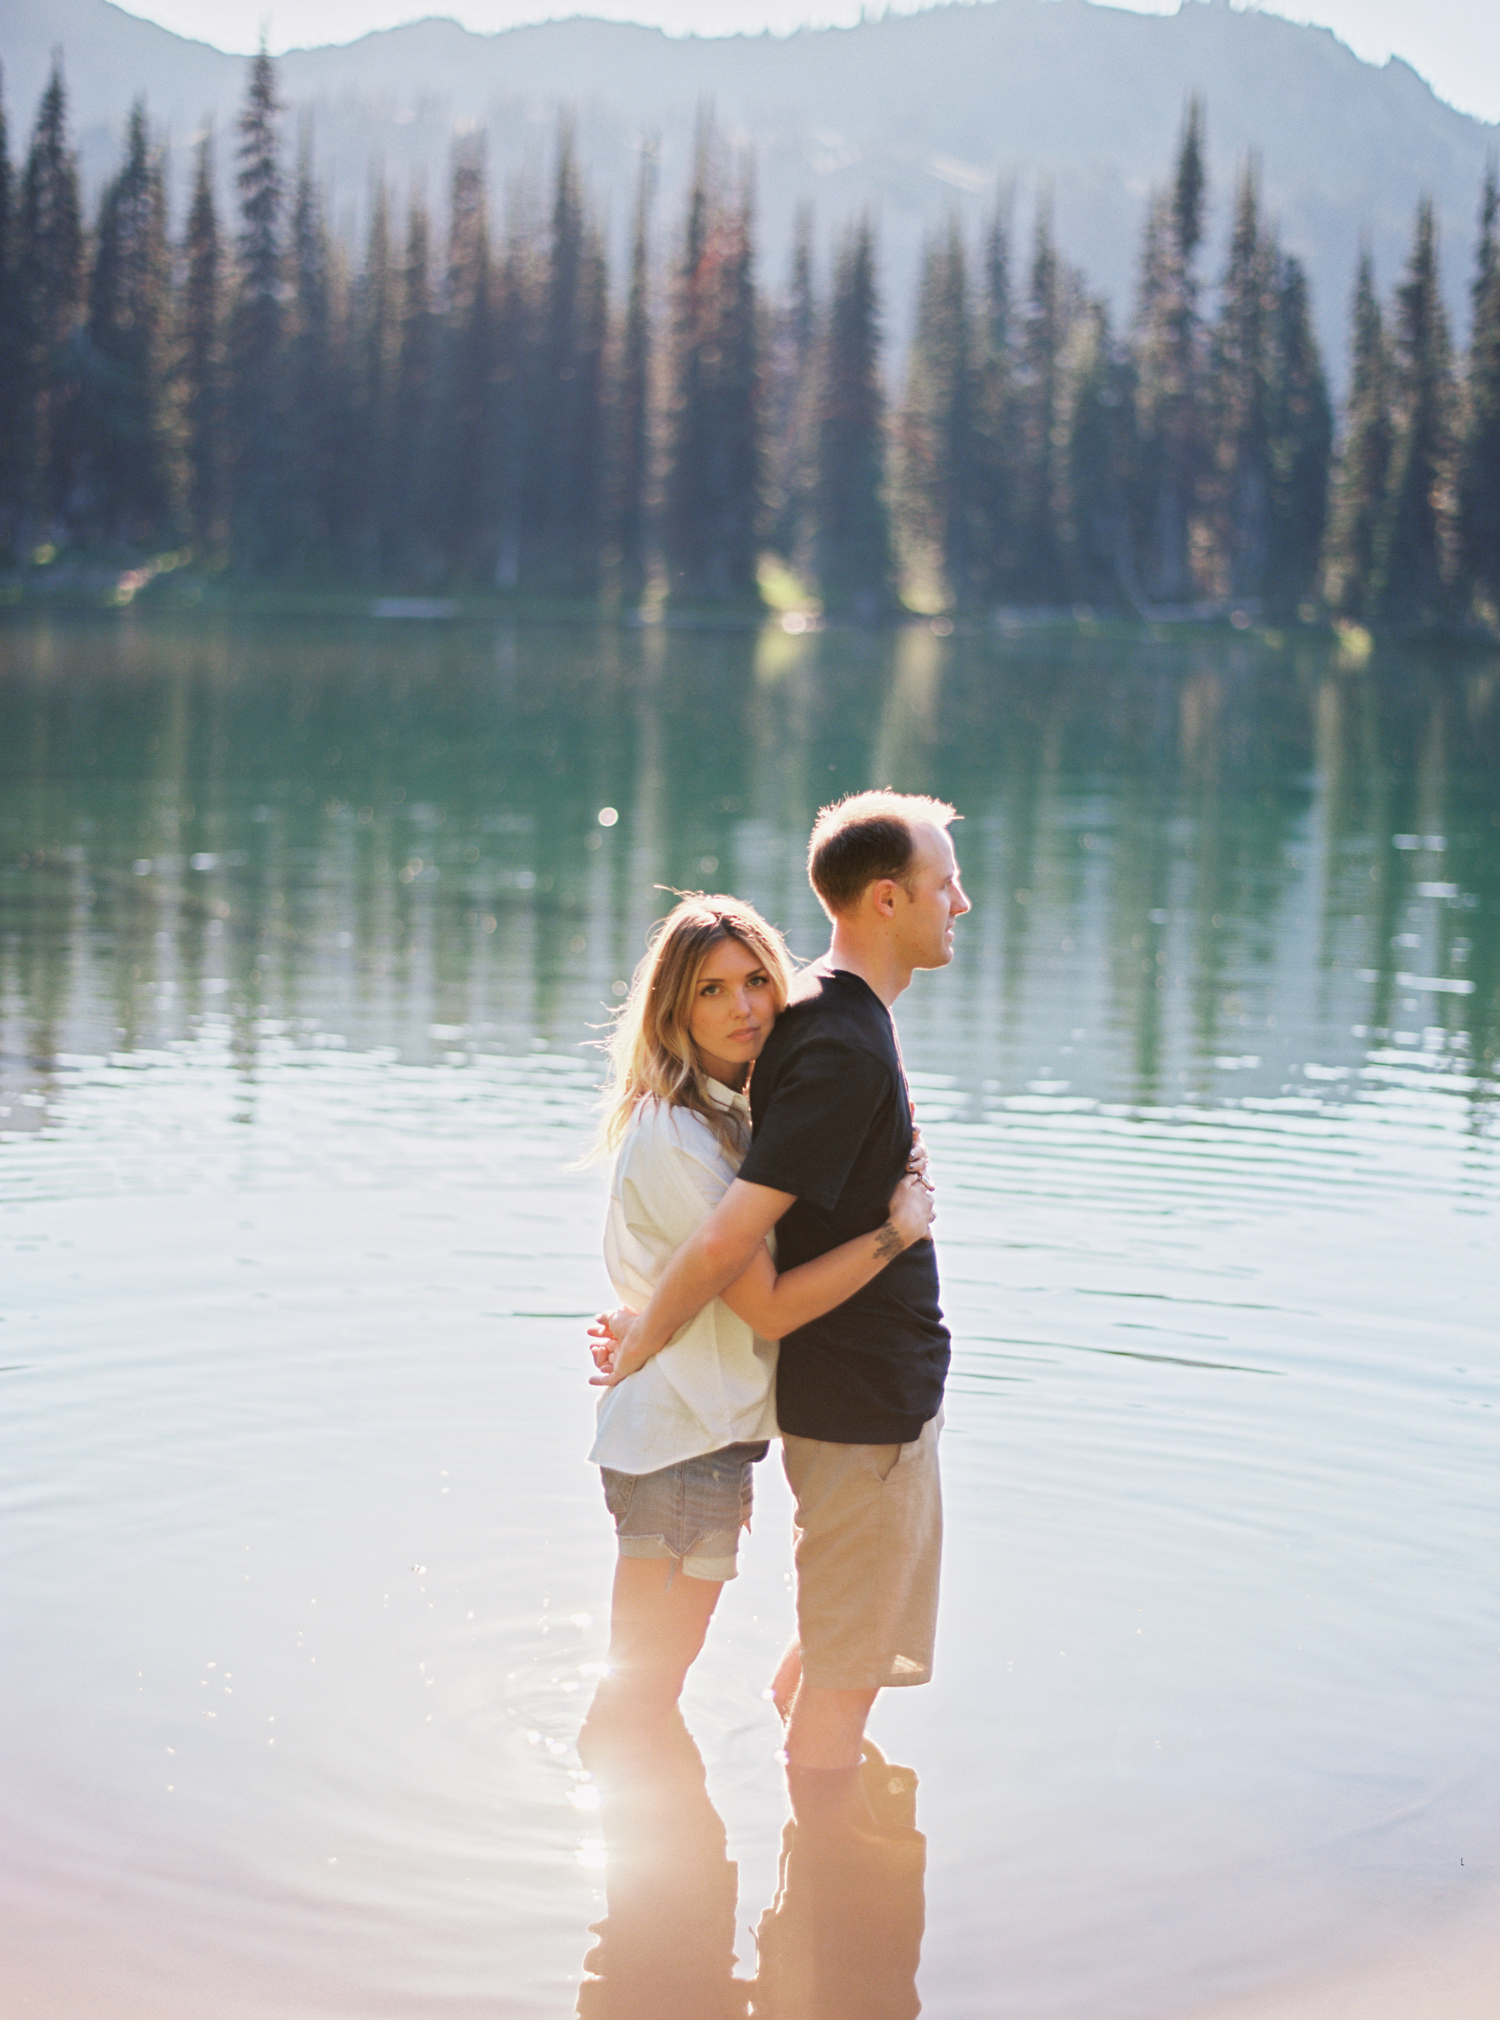 005-mt-rainier-adventure-engagement-session-seattle-film-photographer-ryan-flynn.jpg